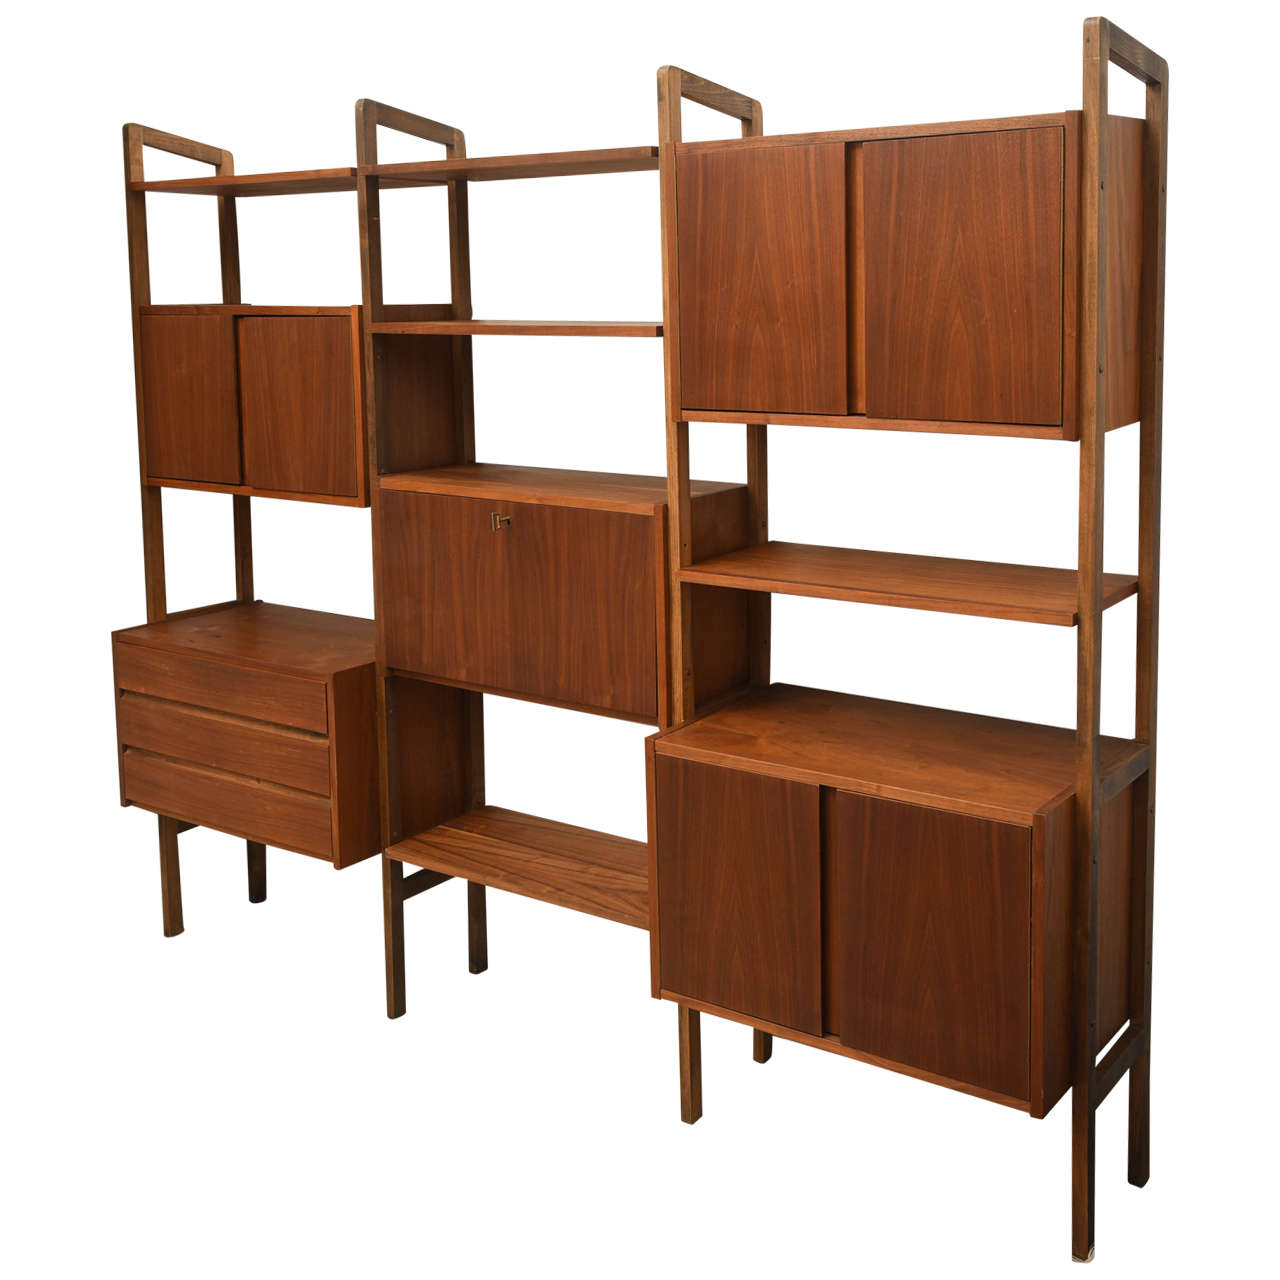 Mid Century Modern Teak Wall Unit Or Storage 1950s Scan Style For